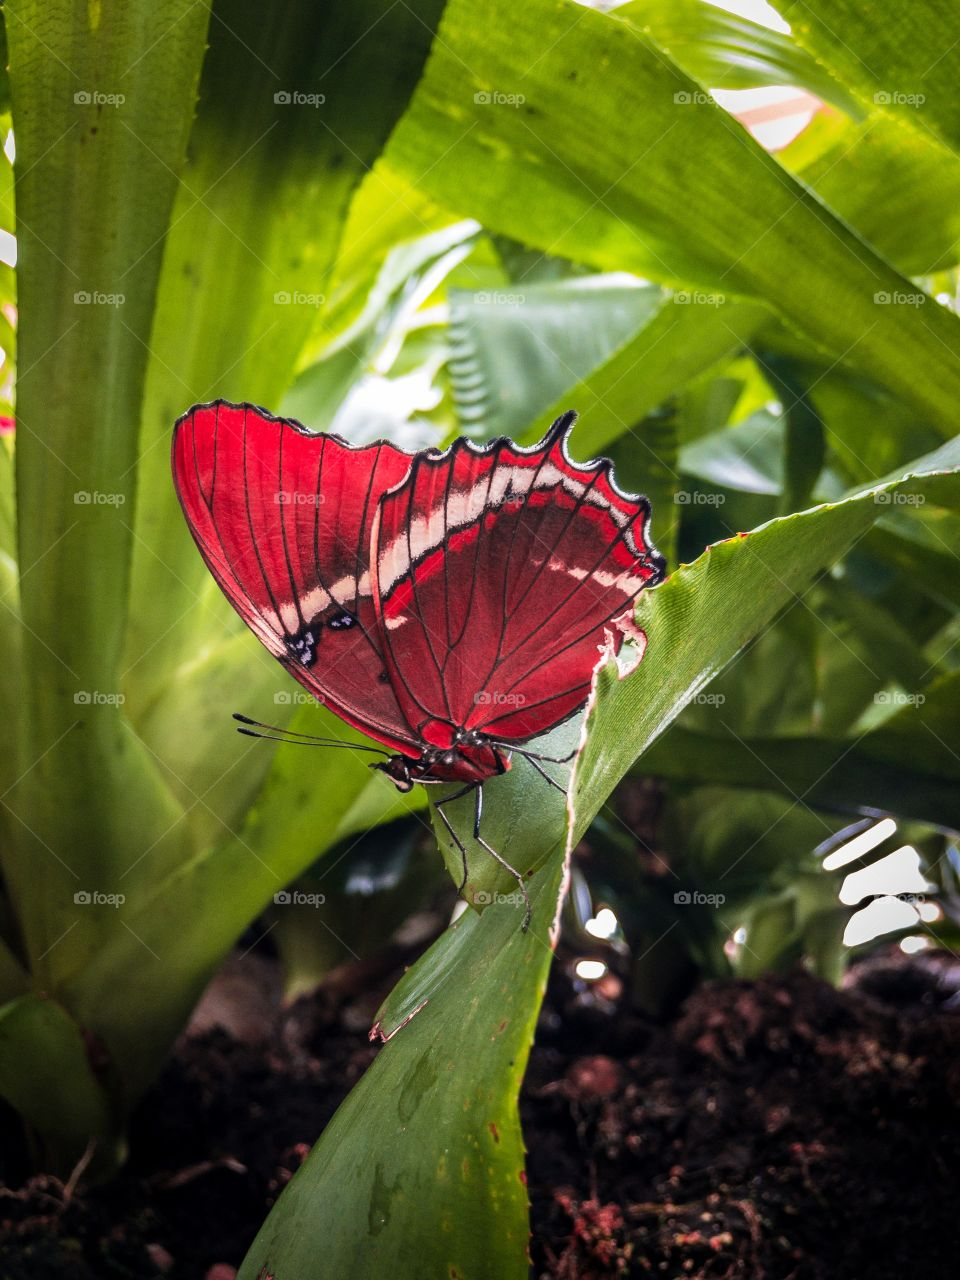 A red winged butterfly sitting on a green plant